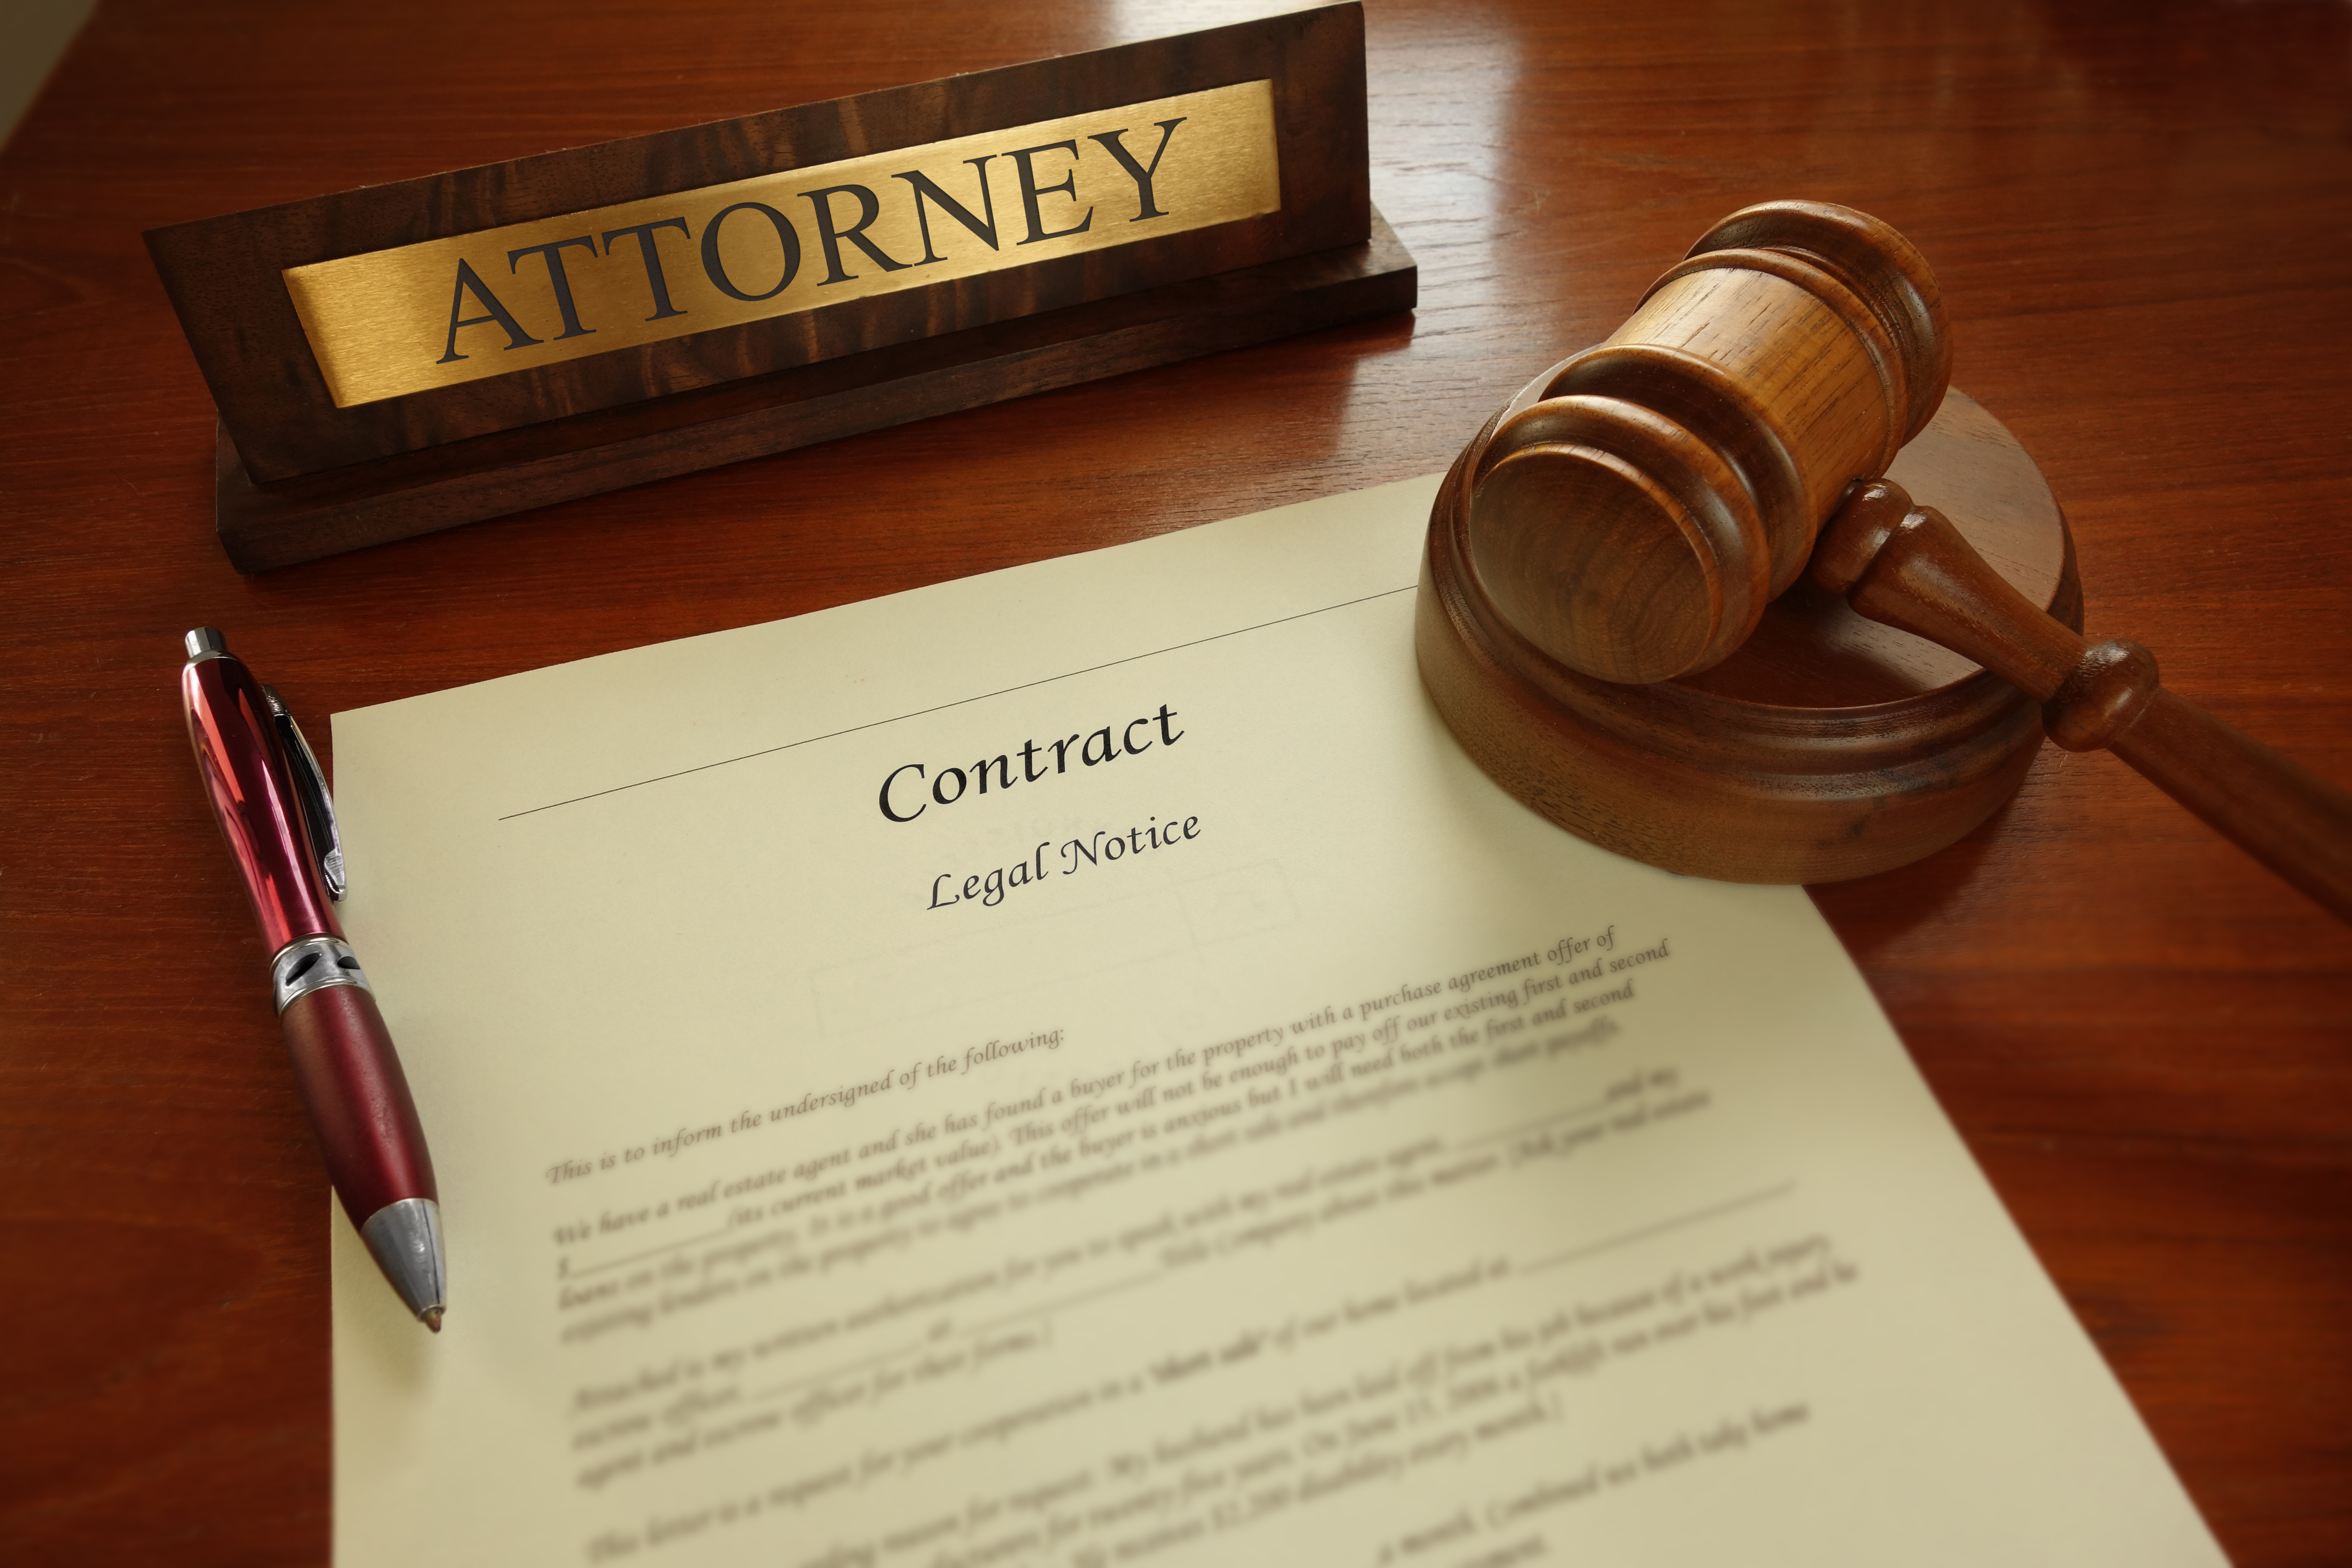 Legal contract with gavel and Attorney name plate on a desk